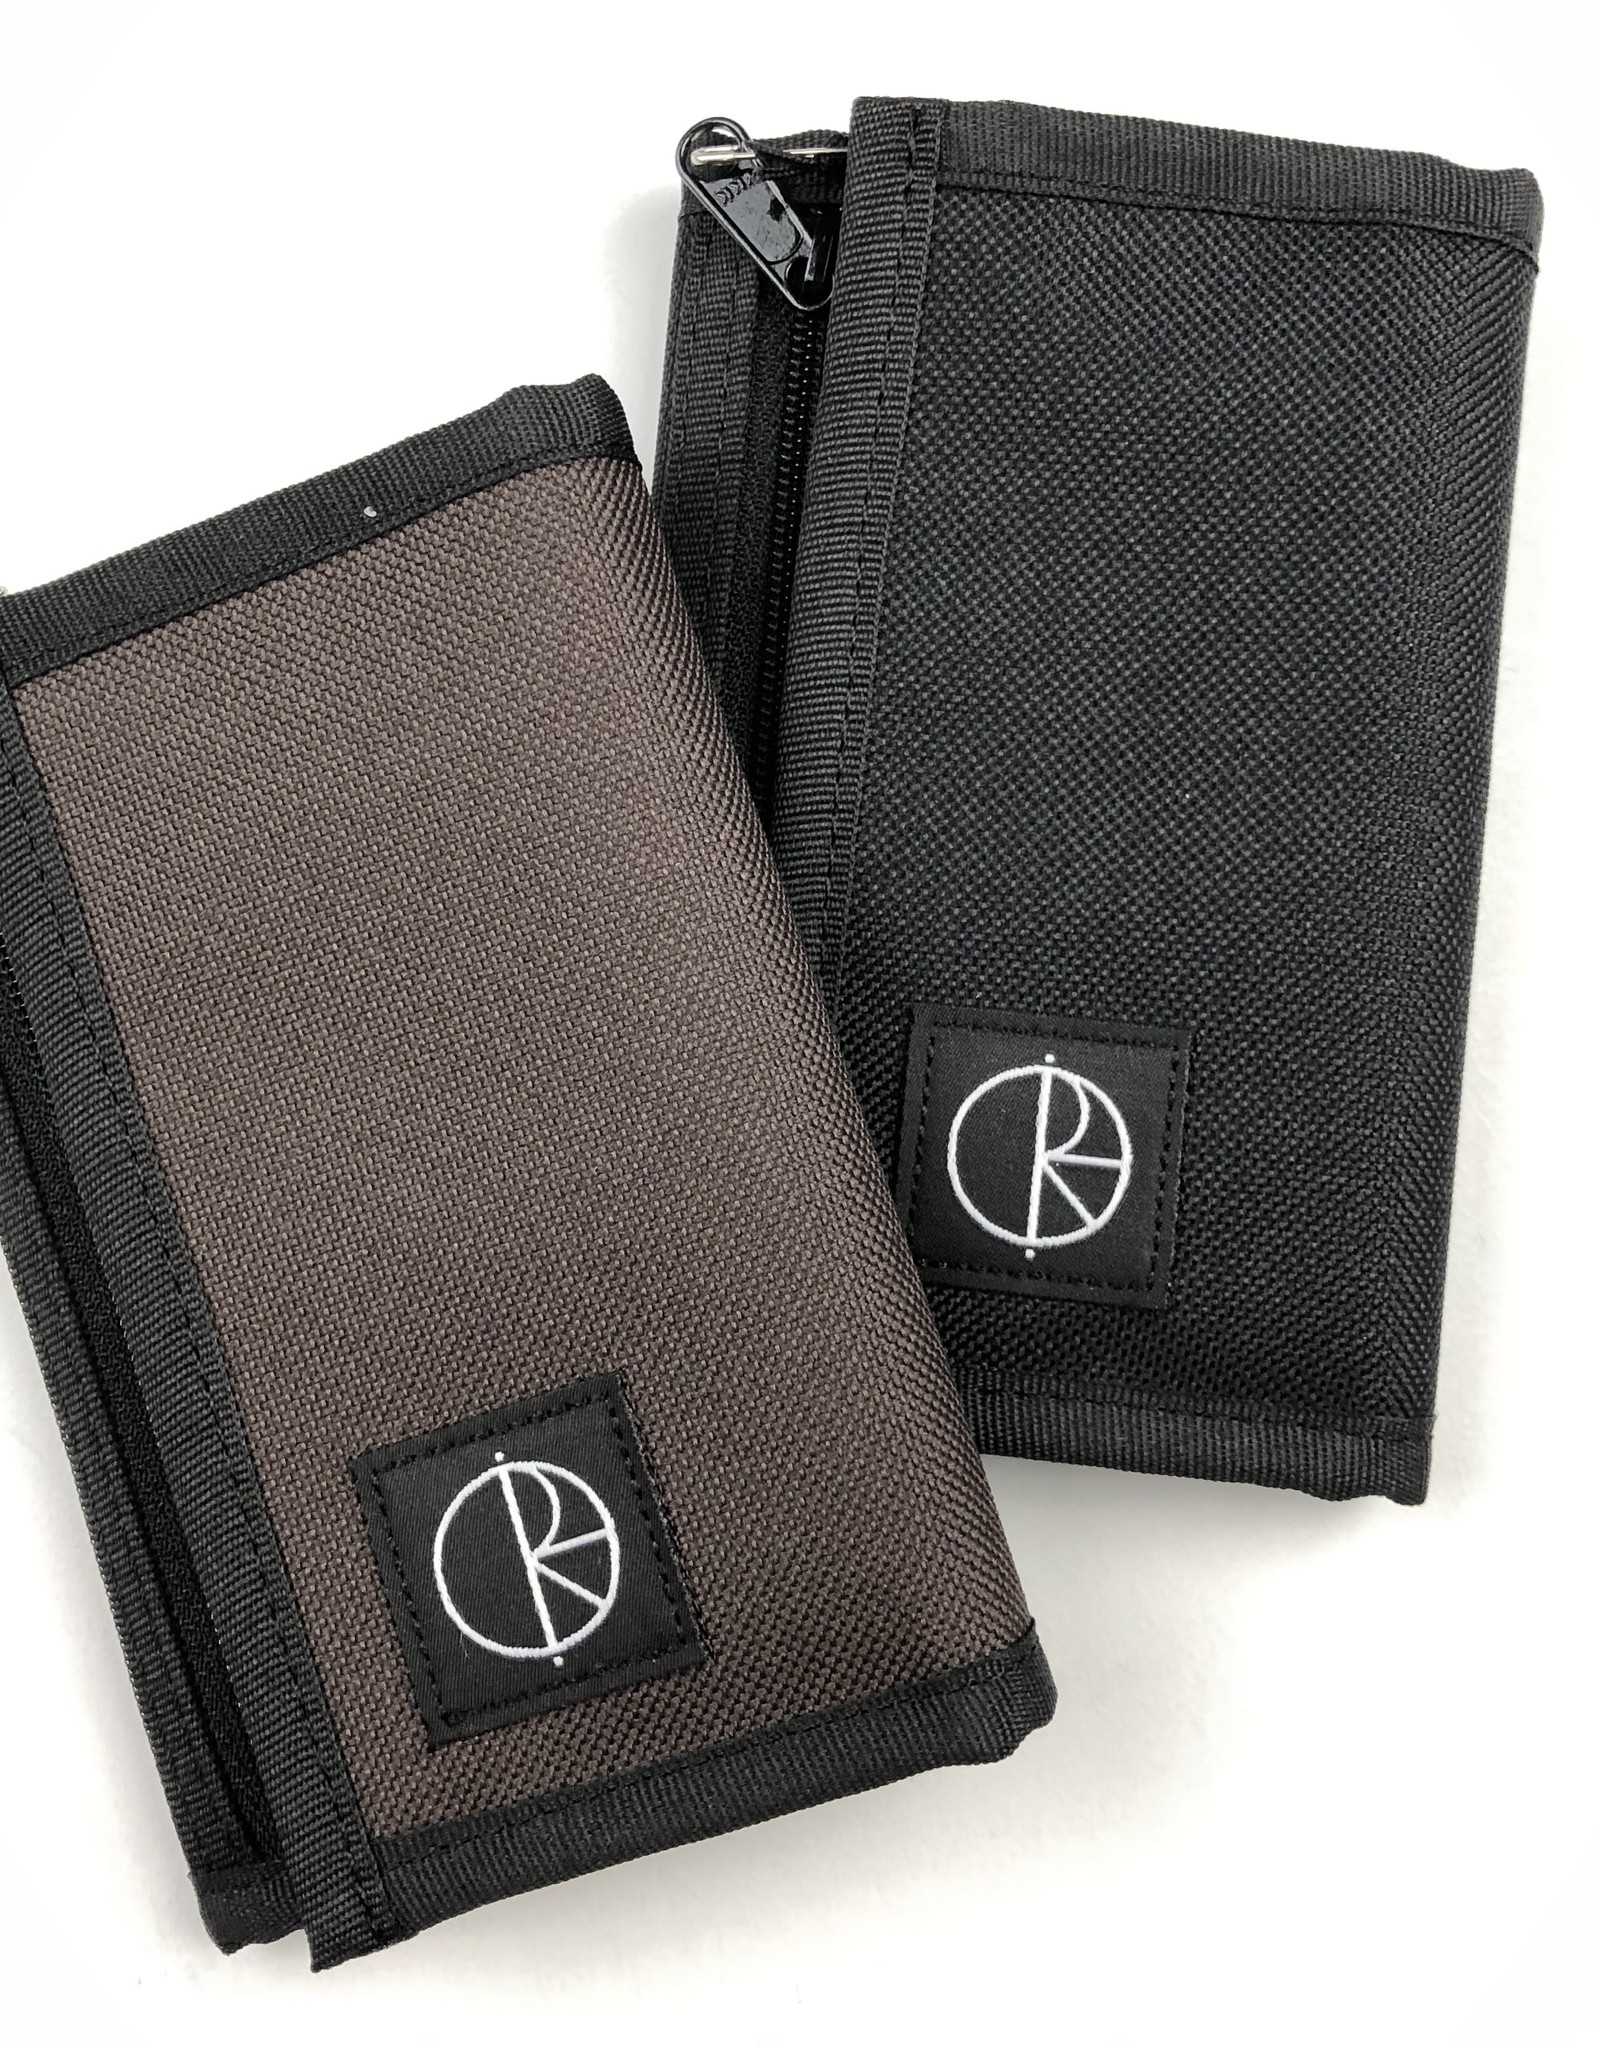 POLAR CORDURA KEY WALLET - (ALL COLORS)